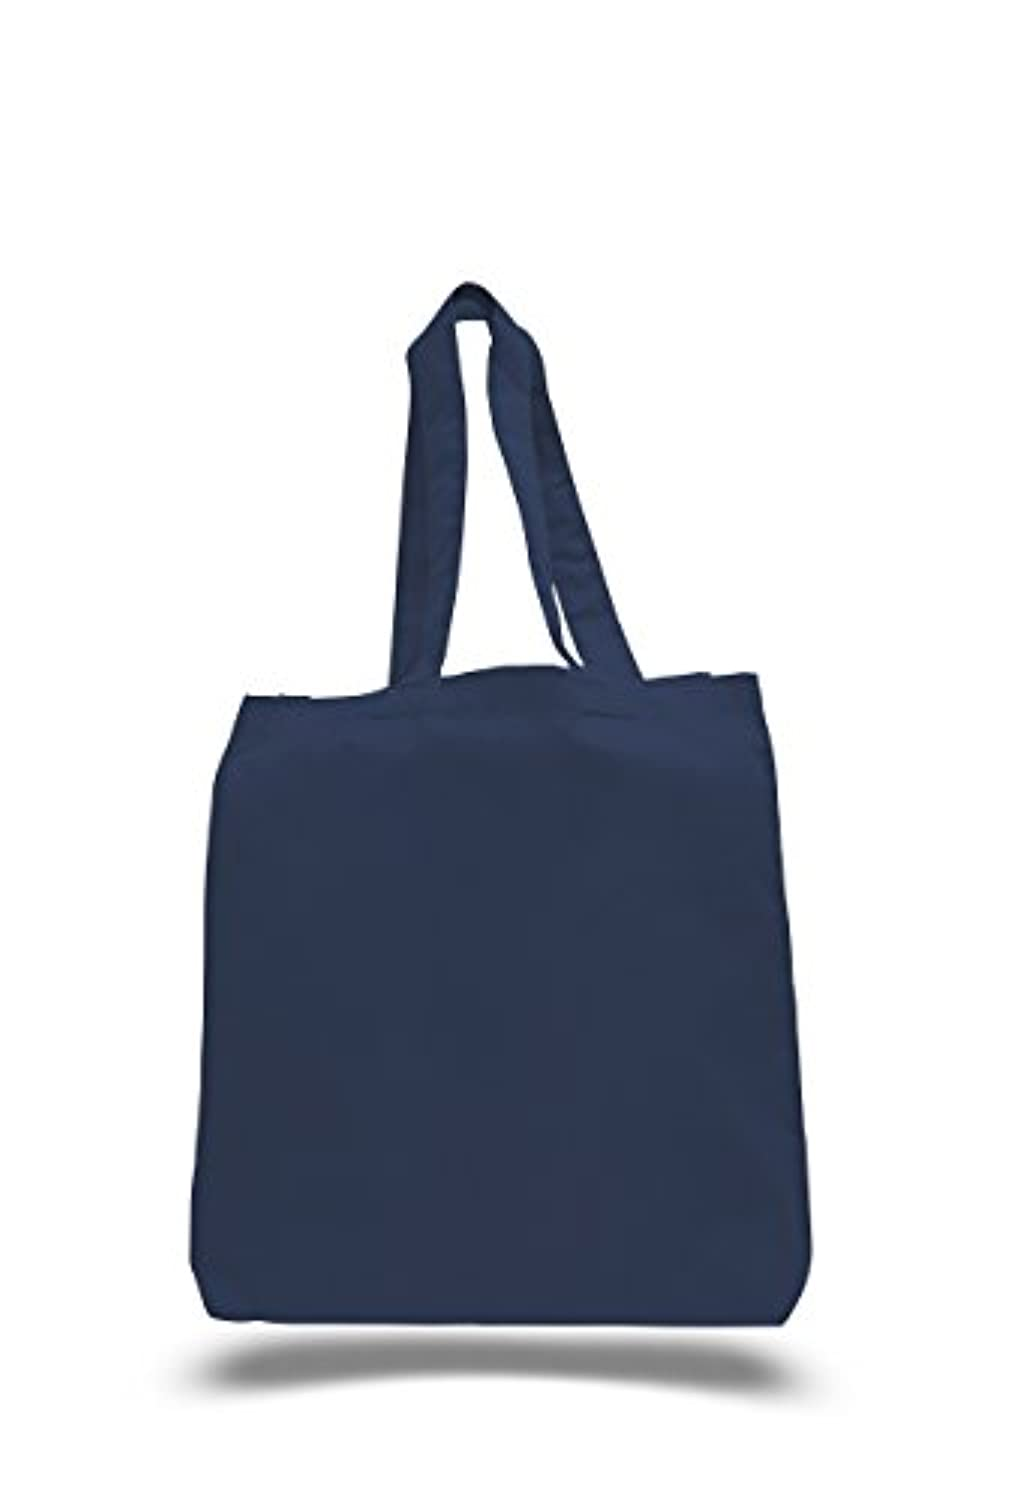 bagzdepot 12パック100 %コットンキャンバスReusable Grocery Tote Bags with Bottom Gusset – 卸売Eco Friendly空白コットンバッグin Bulk 15...